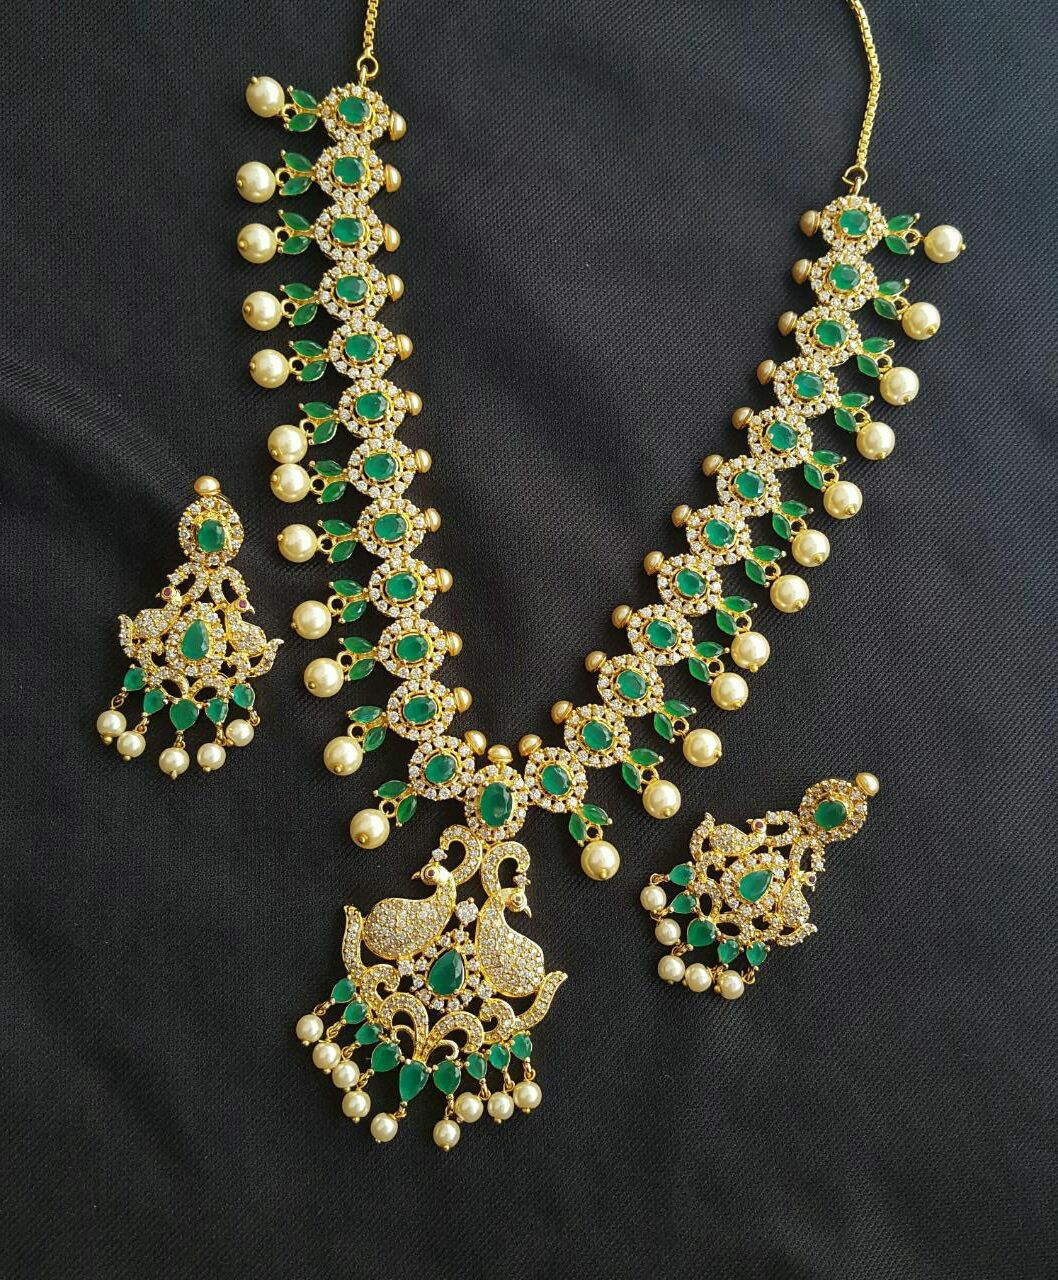 91a4265fa2 Beautiful one gram gold CZ necklace. Necklace studdedwith white and green  color CZs.To order whatsapp on 8978304347 03 December 2017